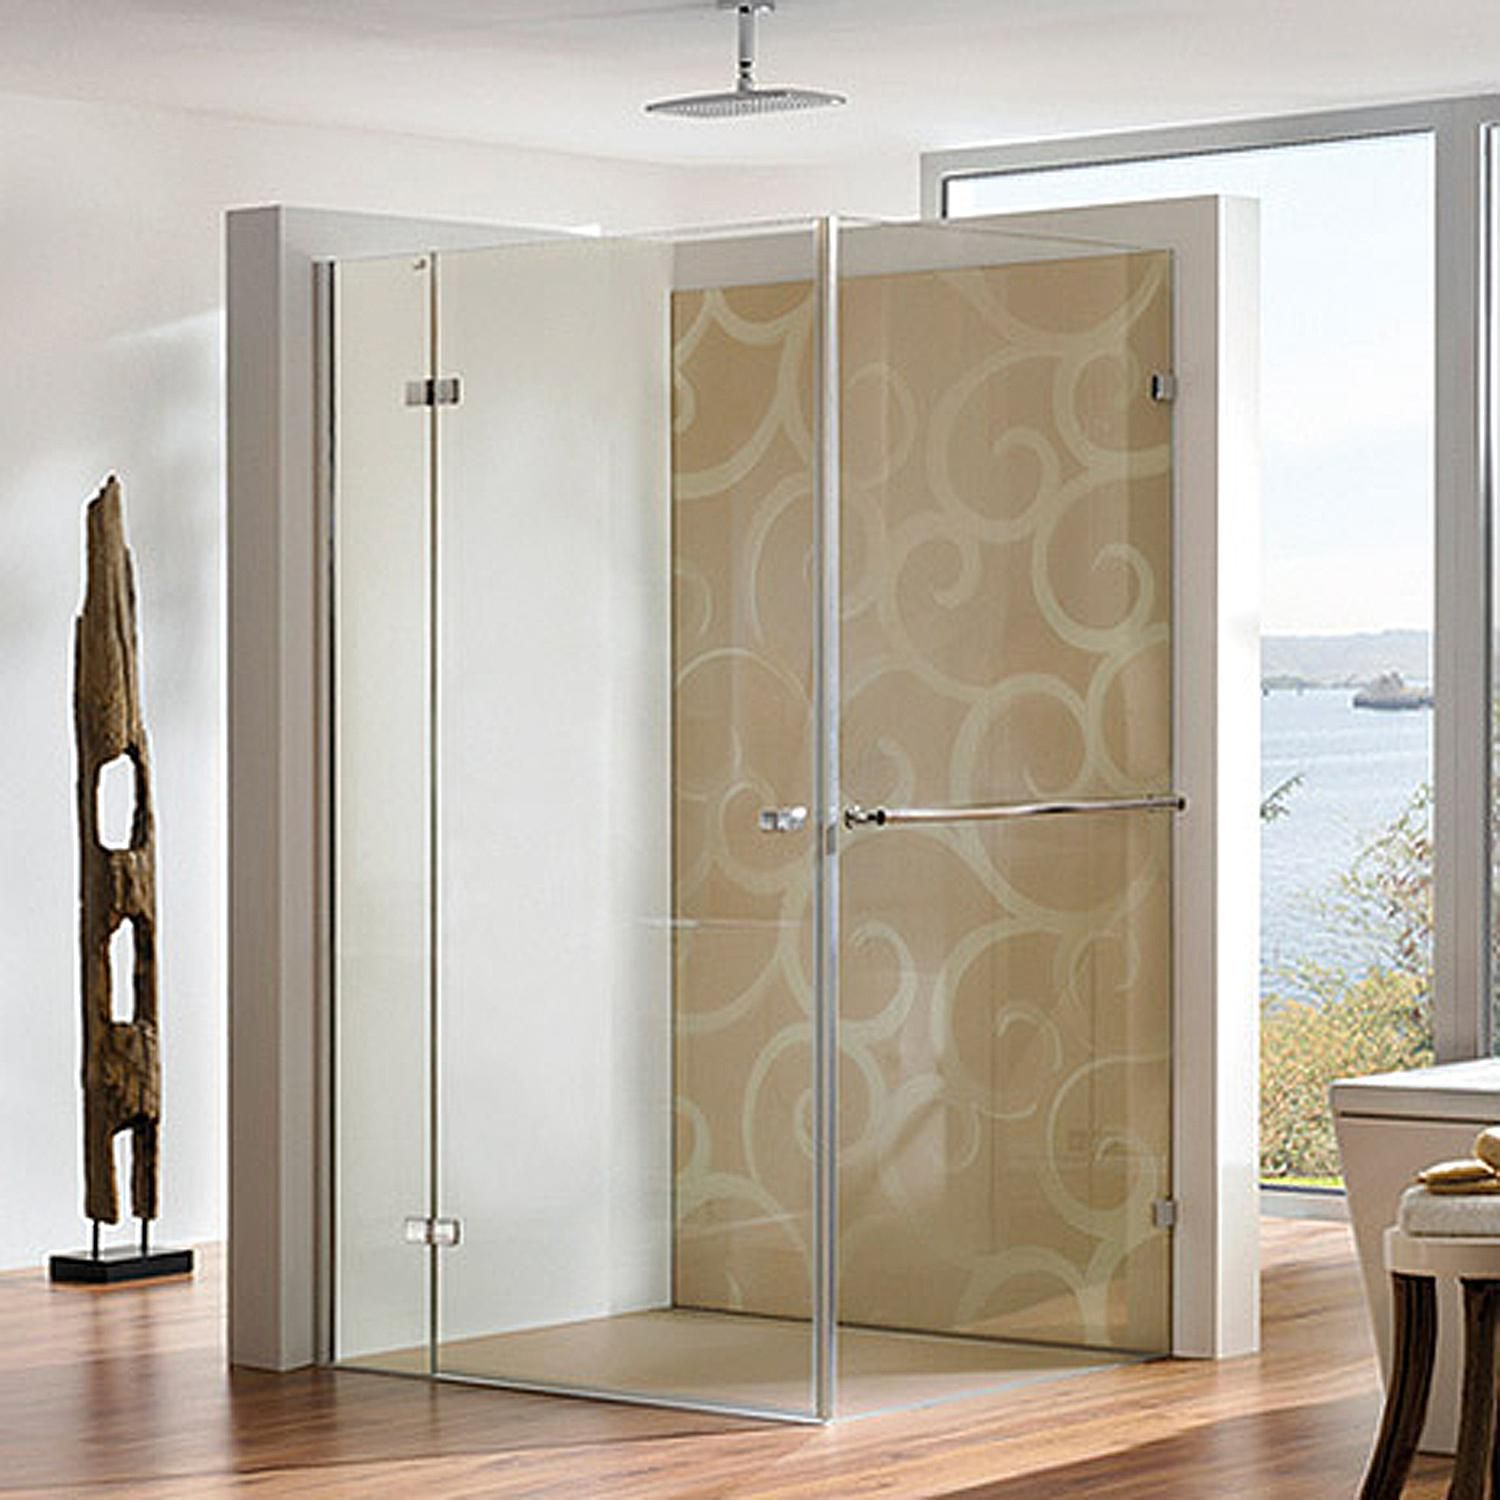 Design Doorless Shower Designs 19 gorgeous showers without doors seamless stylish stepless showers